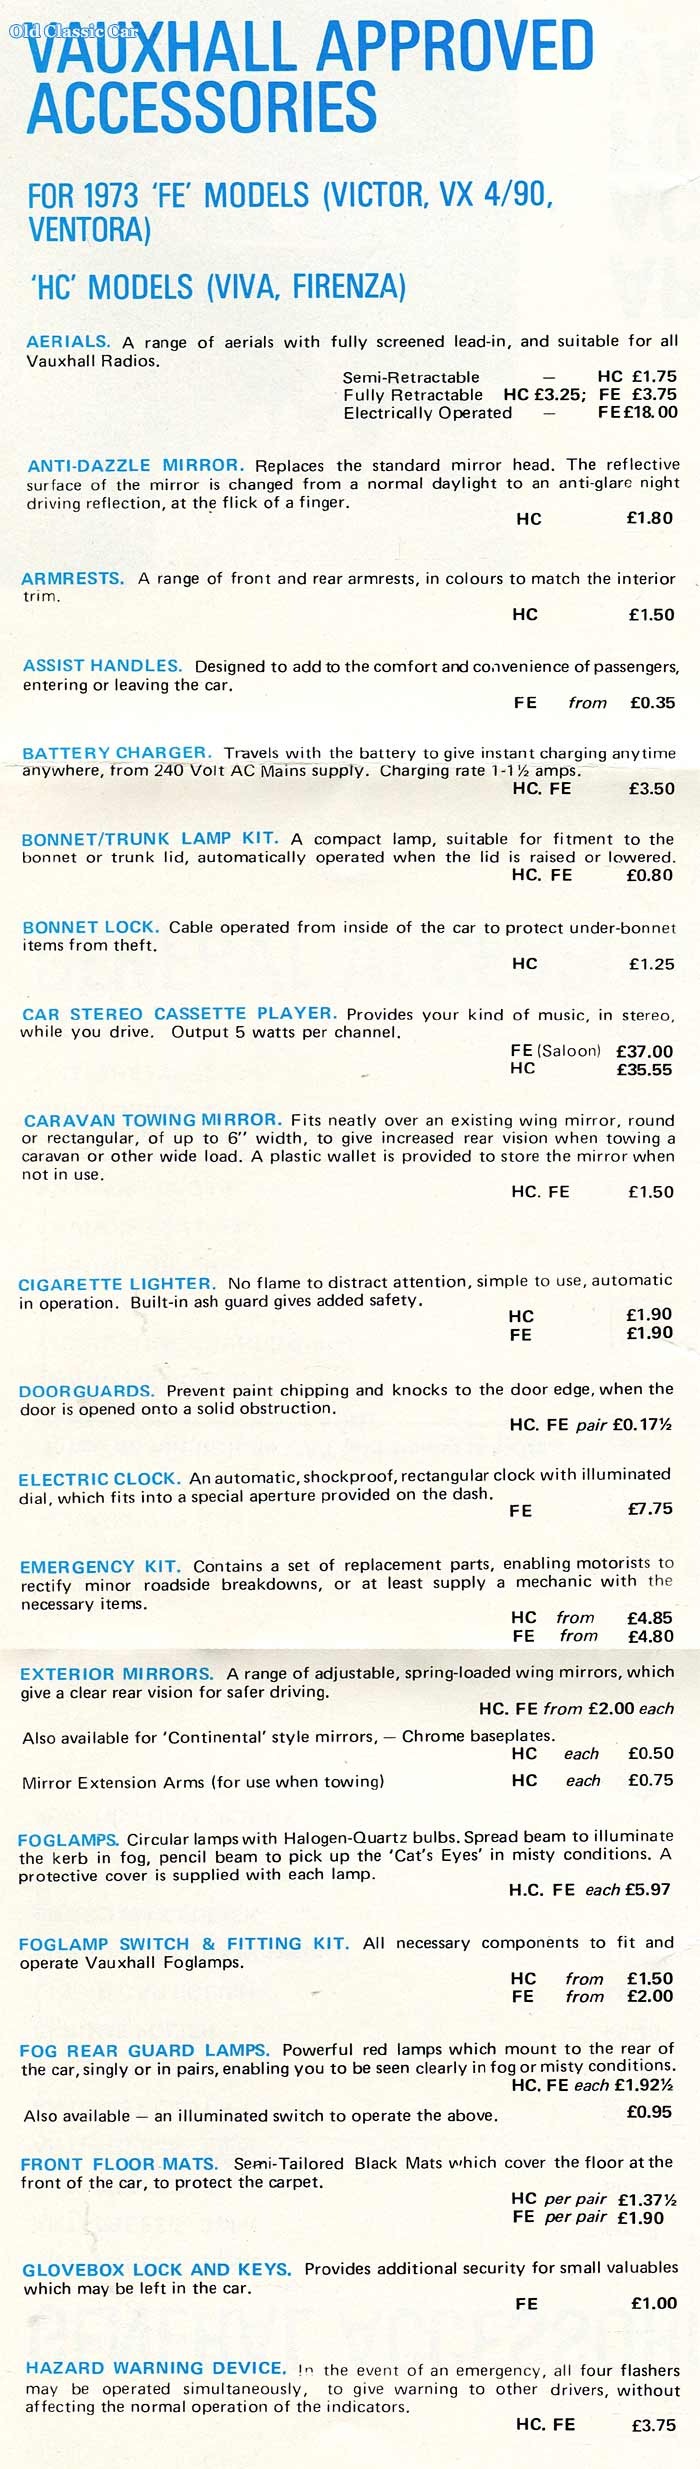 Vauxhall Viva accessories part 1